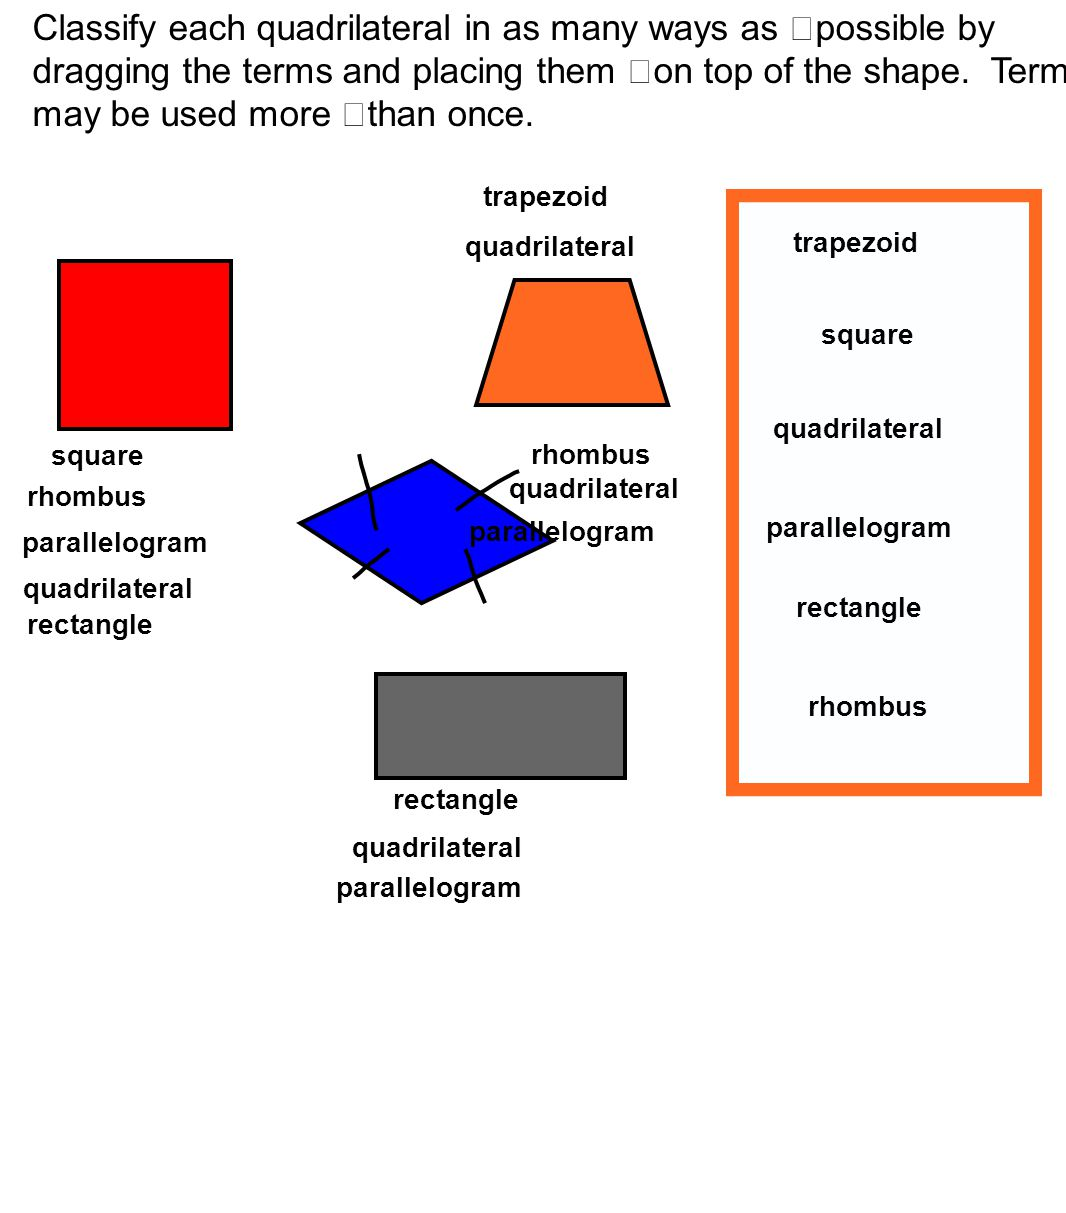 Classify each quadrilateral in as many ways as possible by dragging the terms and placing them on top of the shape. Terms may be used more than once.